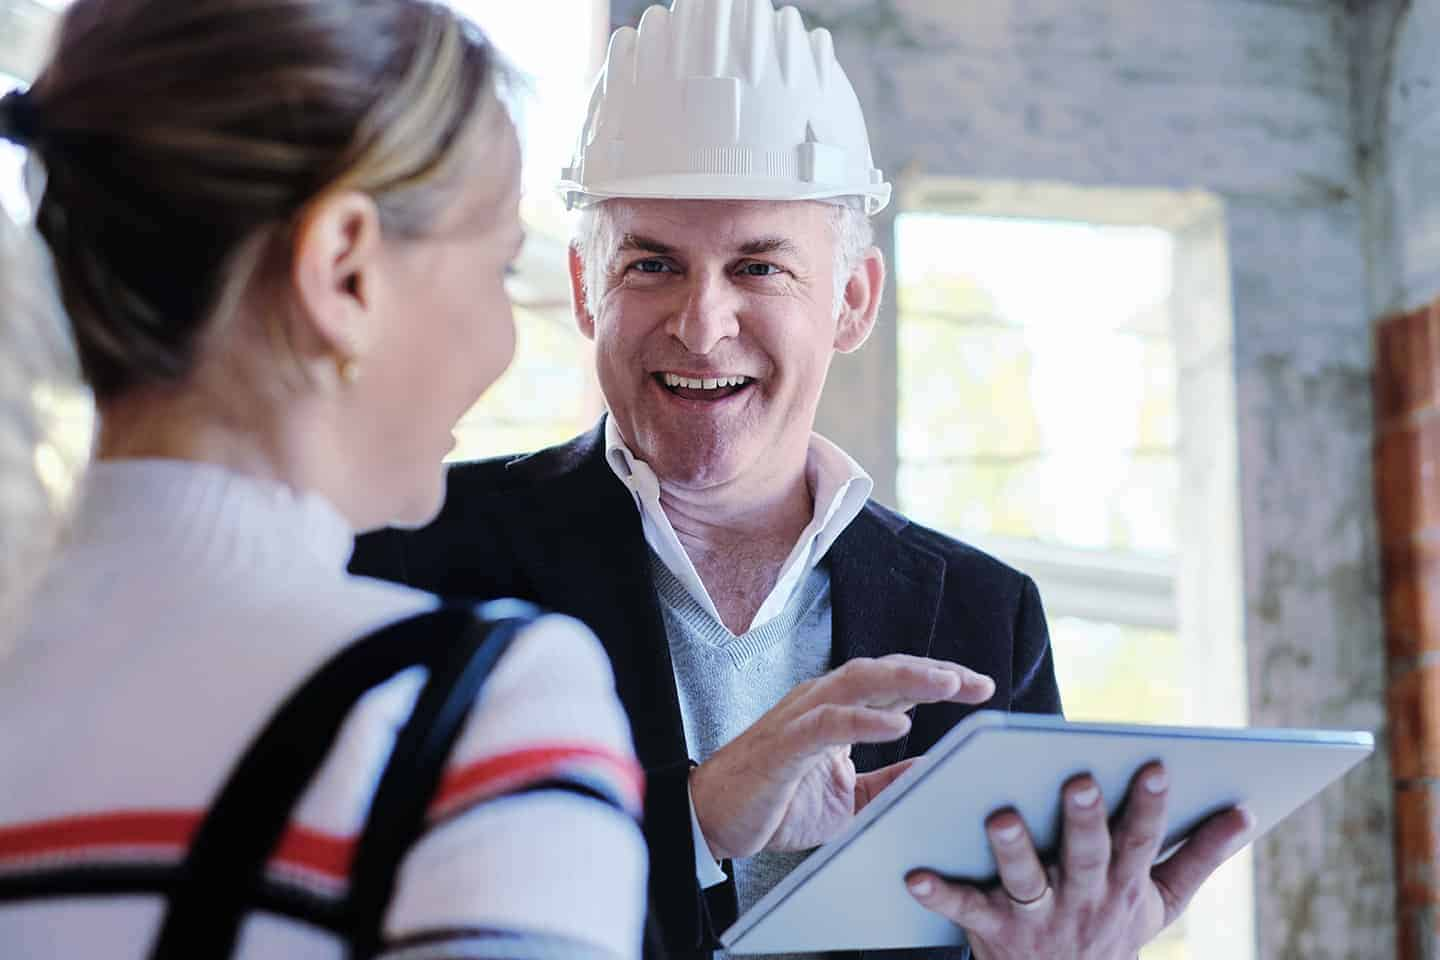 Sales agent talking with client in new building. Man working as realtor in construction site with customer. Real estate broker showing home to woman.